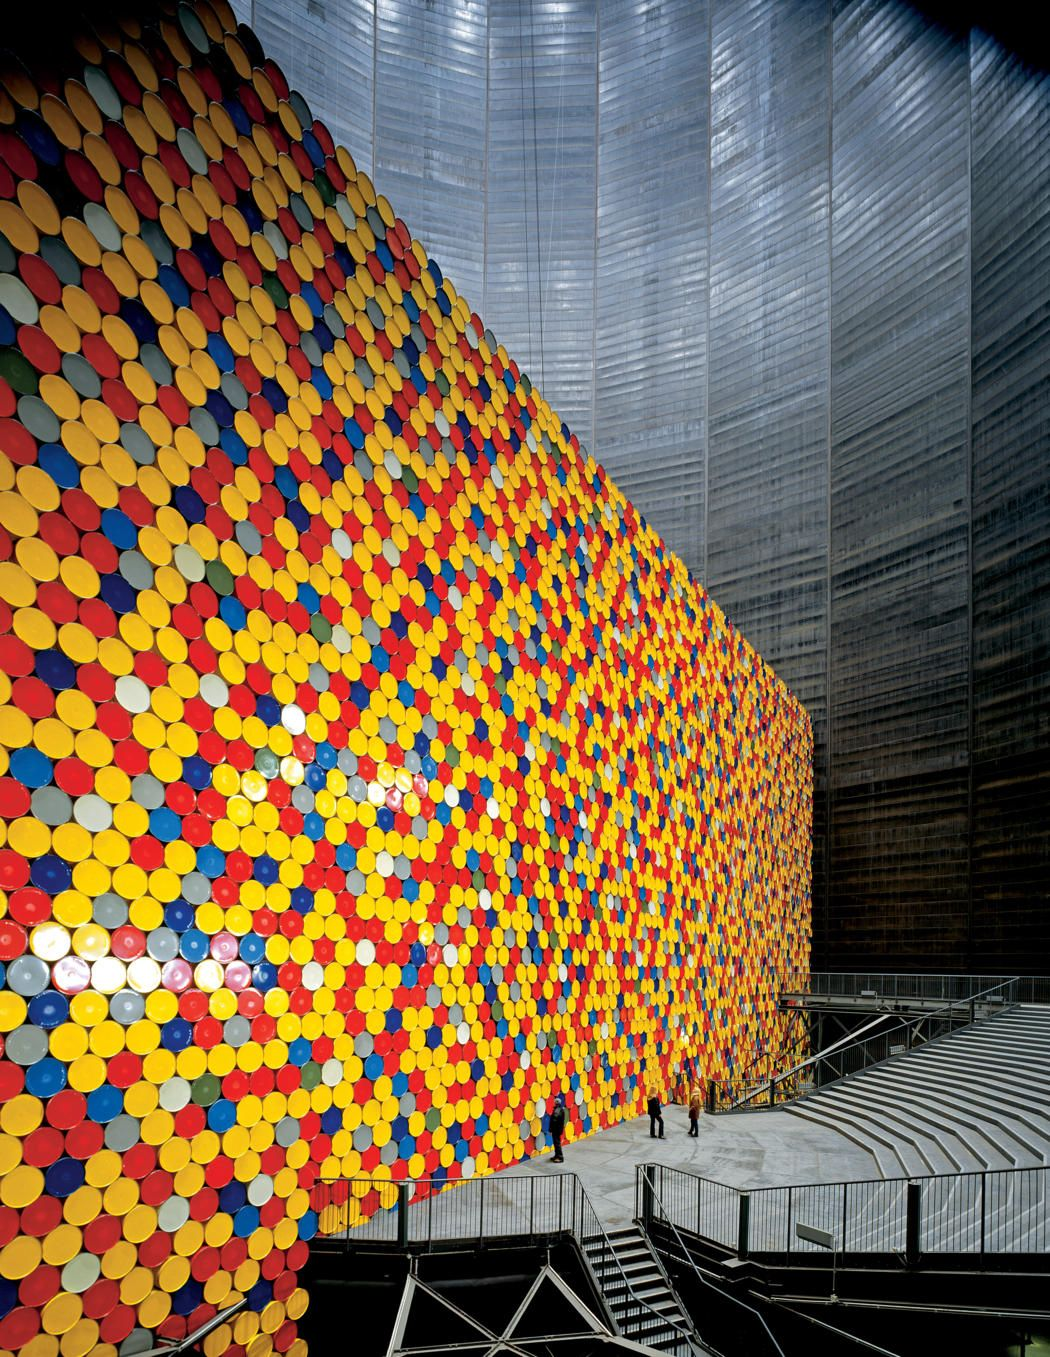 The Wall - 13,000 Oil Barrels, Gasometer Oberhausen, Germany, Christo and Jeanne-Claude (1998-9)